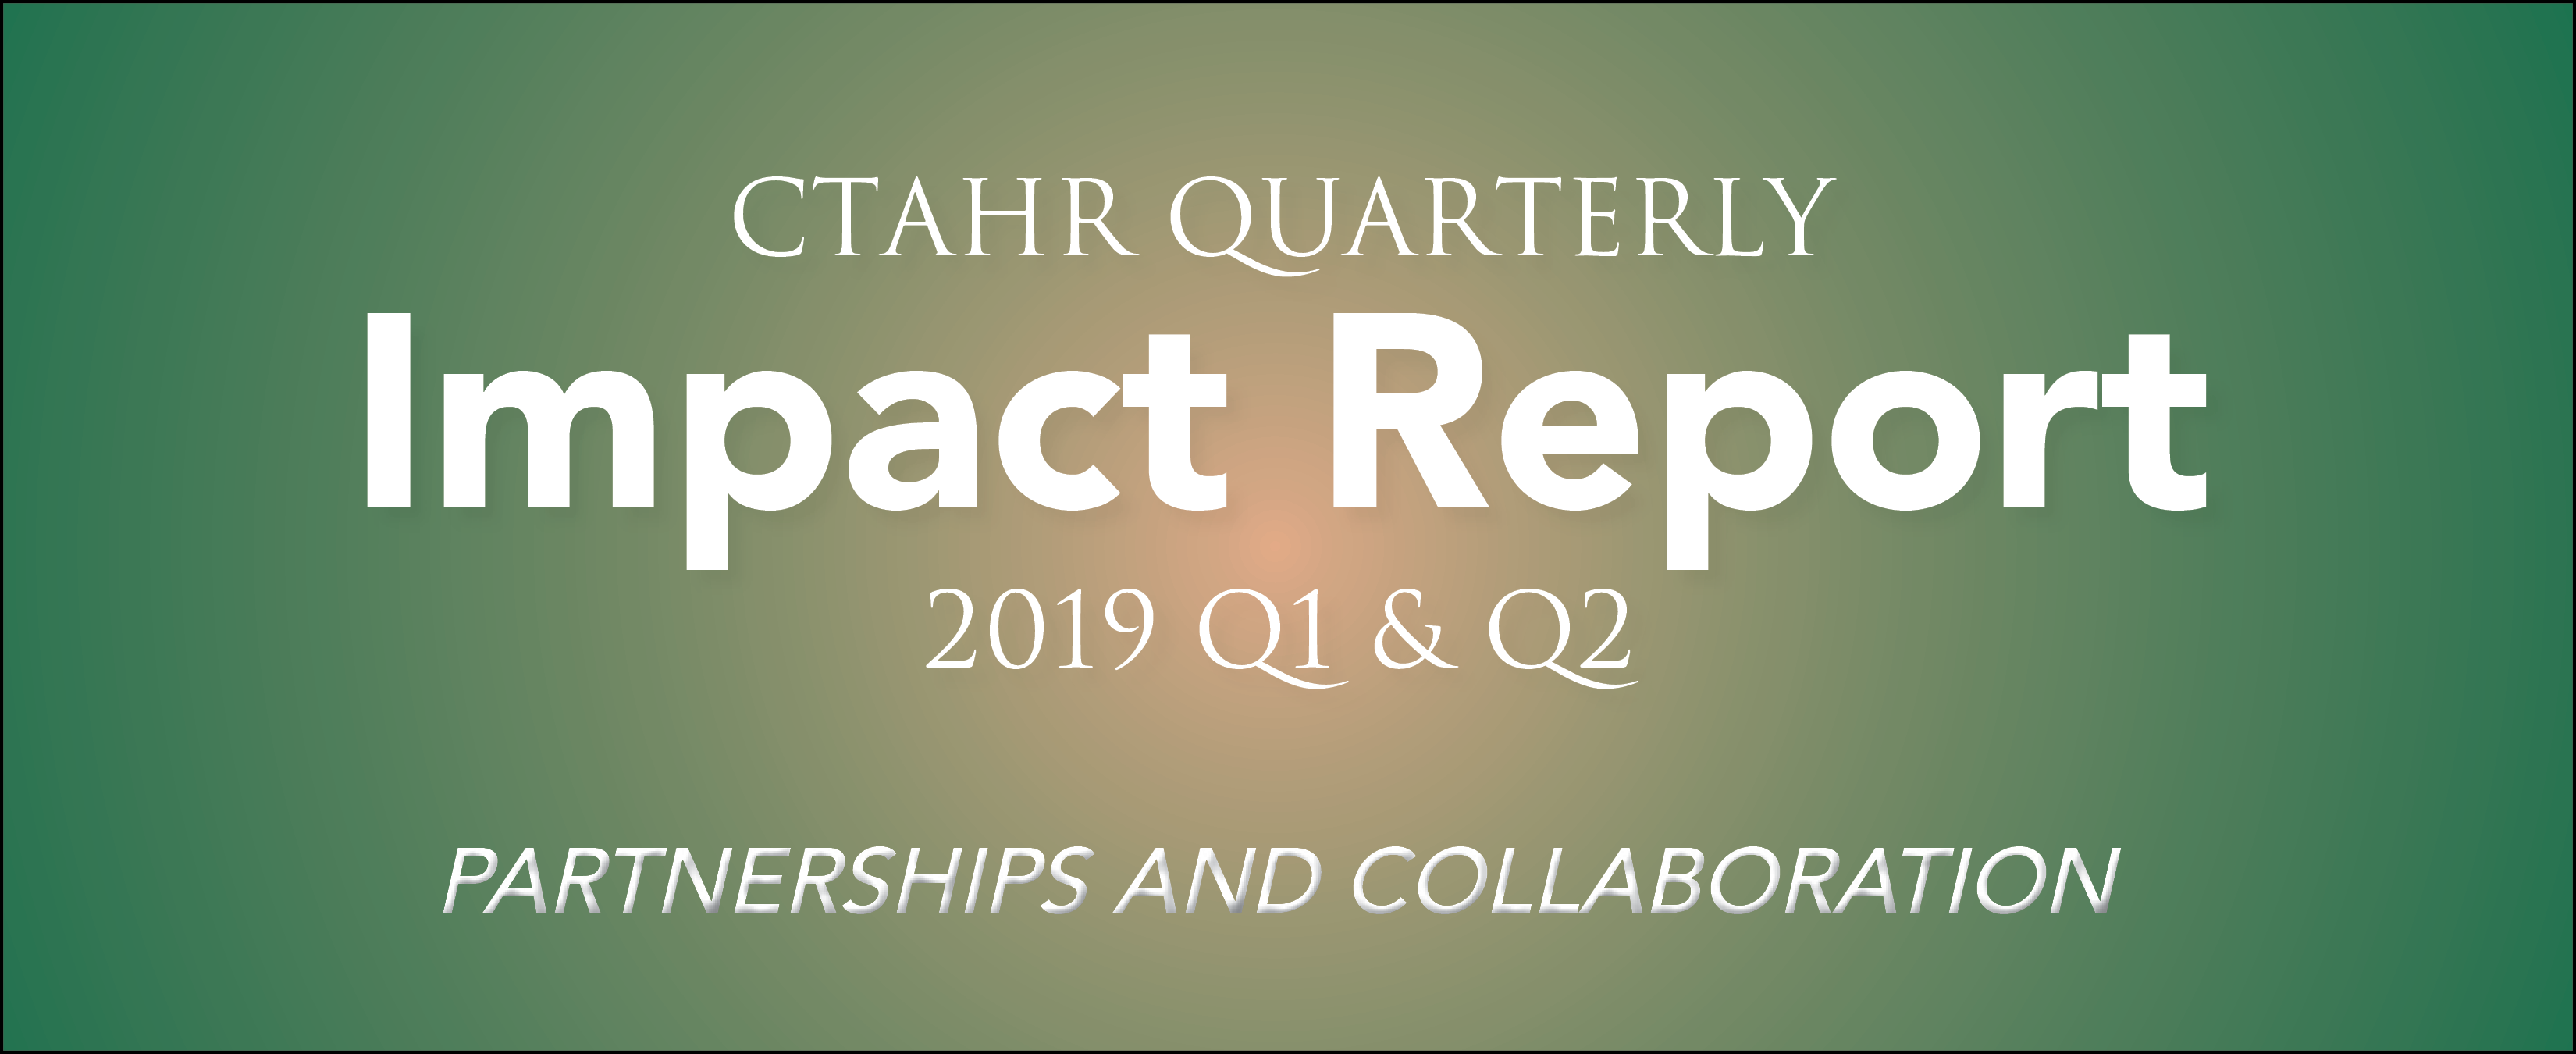 2019 Impact Report, Partnerships and Collaboration